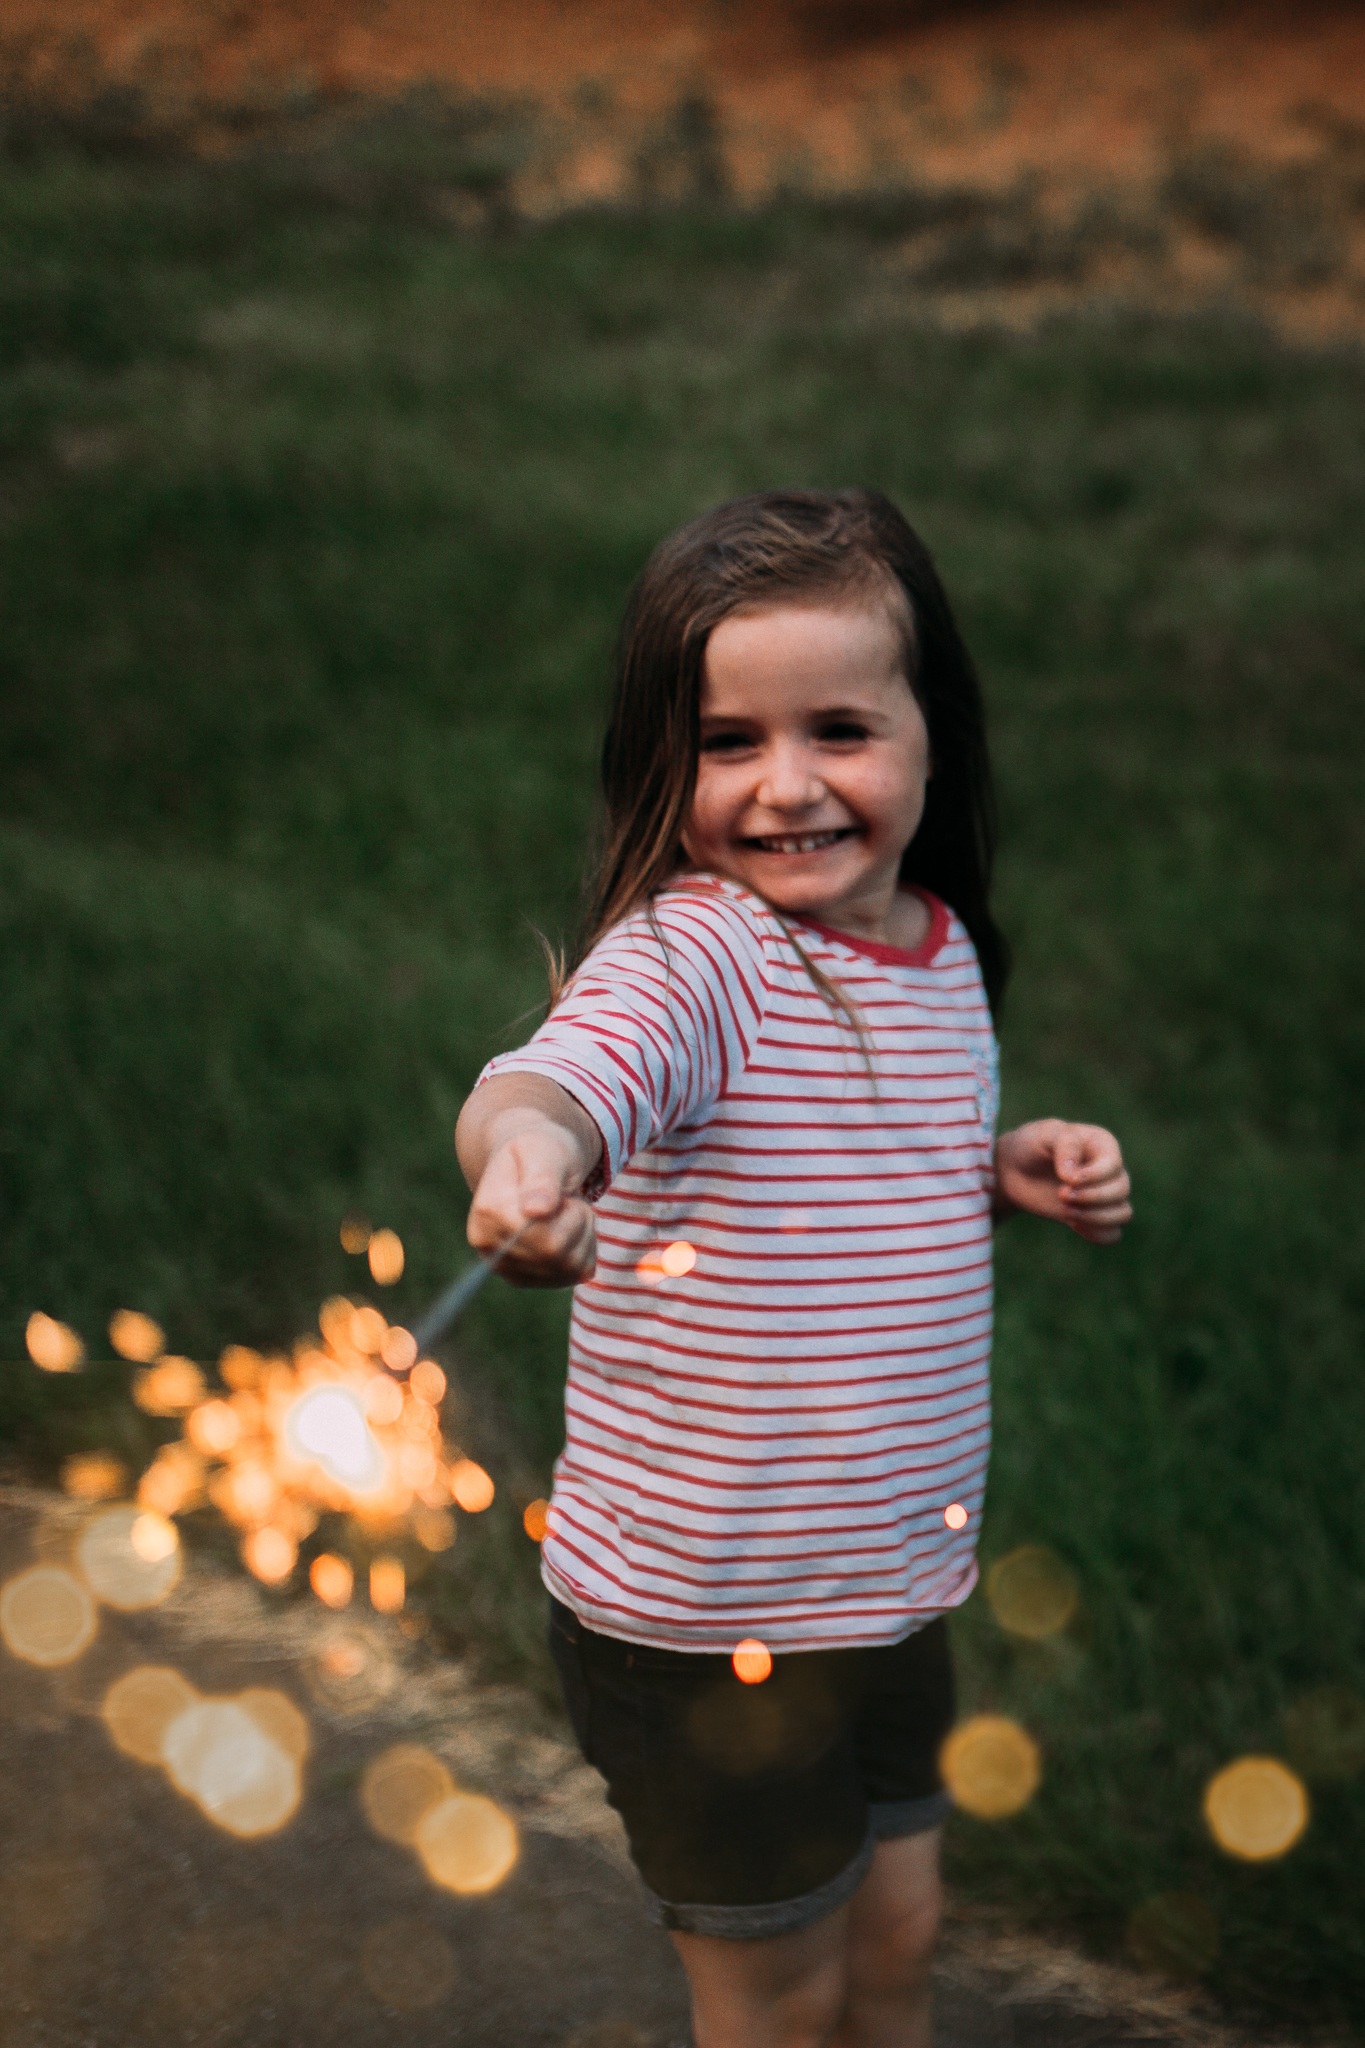 girl playing with sparkler Fourth of July summer Ashburn Loudoun Northern Virginia family lifestyle documentary childhood Marti Austin Photography